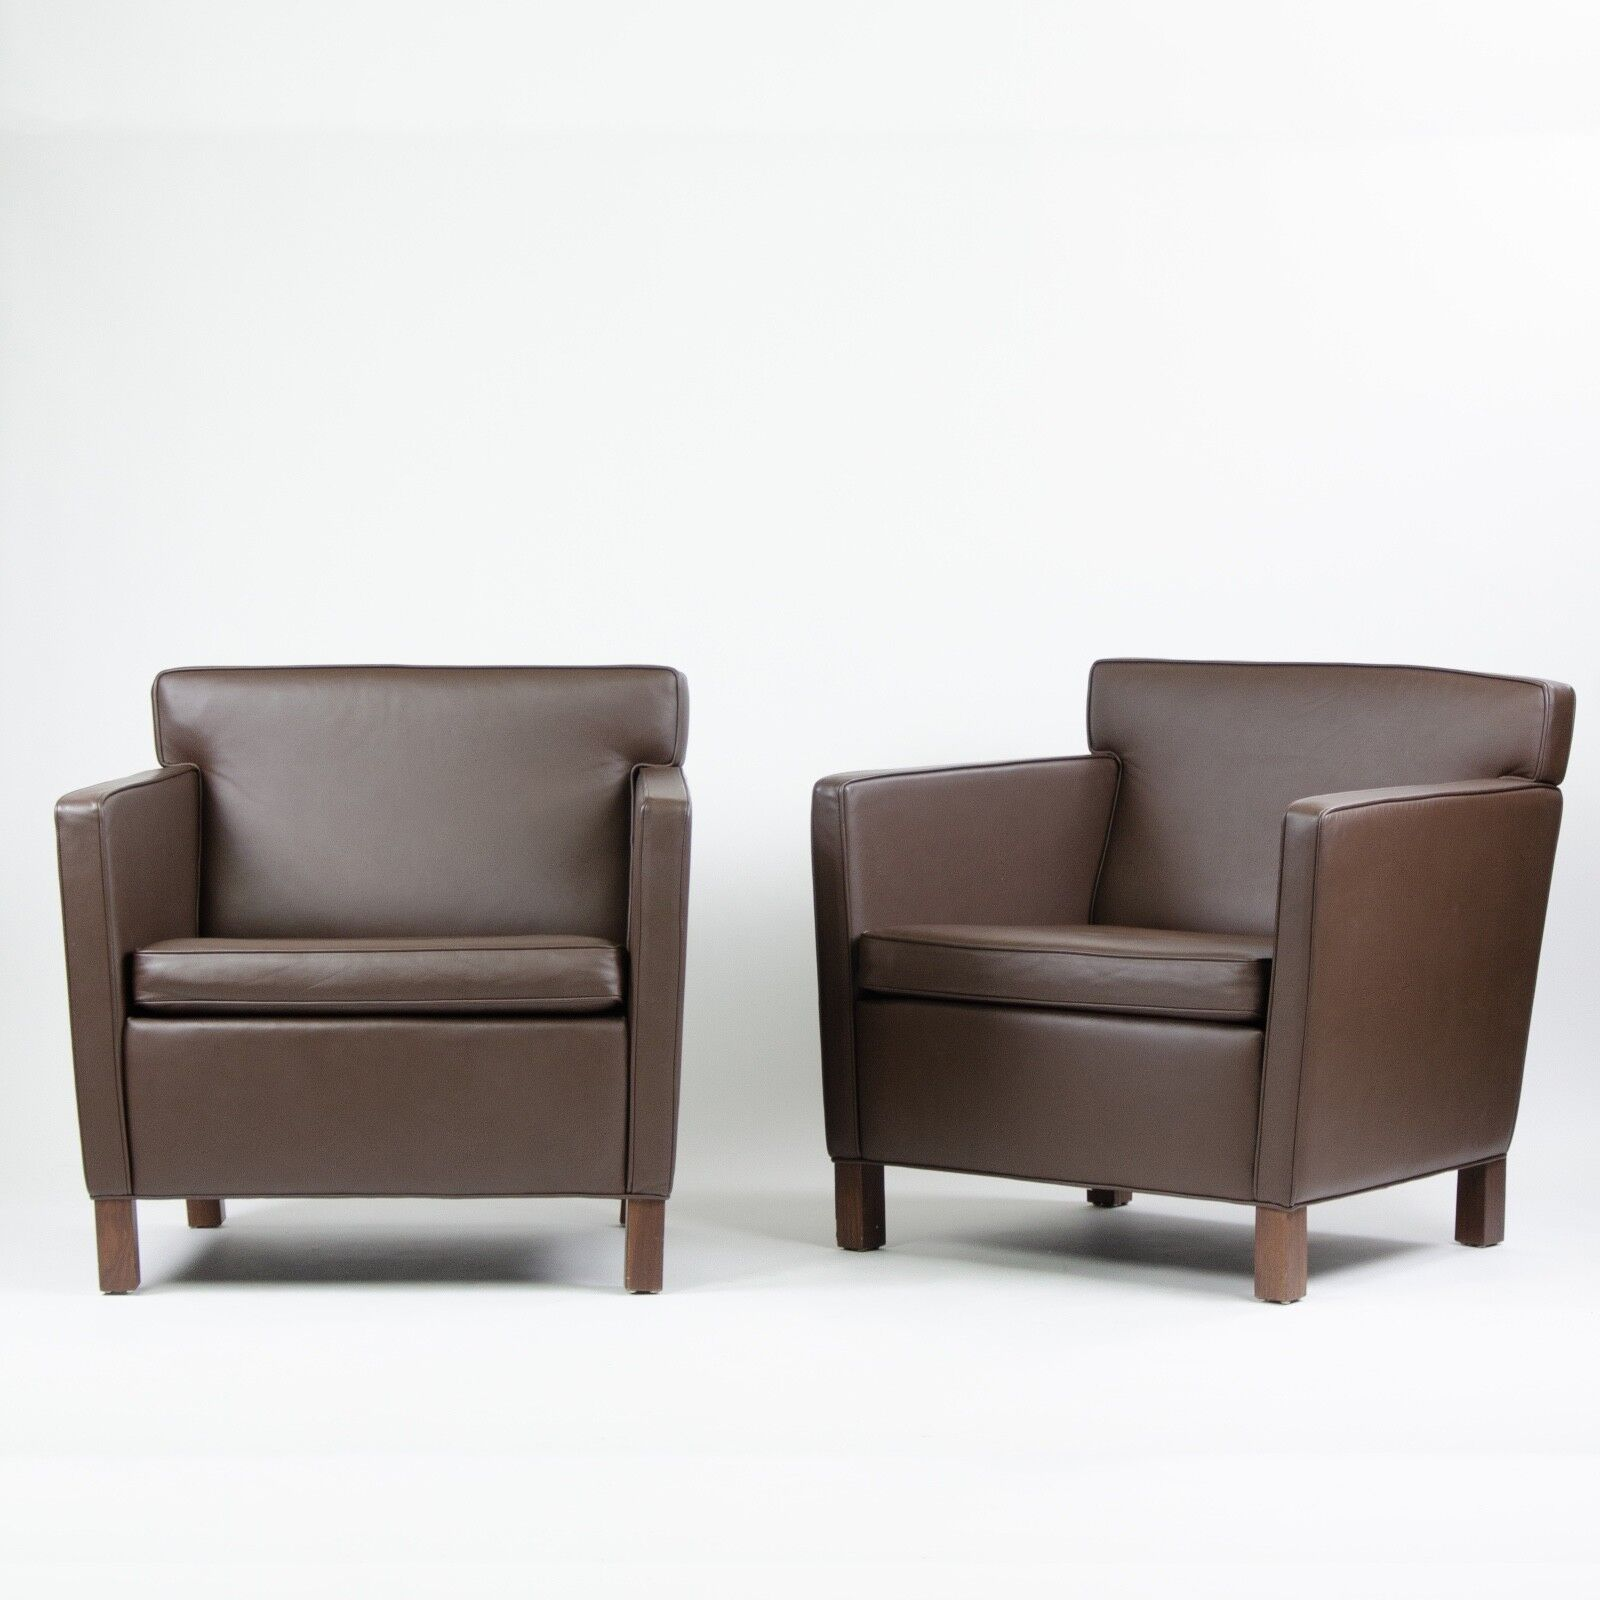 Knoll International Details About Mid 2000 S Knoll International Mies Van Der Rohe Krefeld Lounge Chairs Leather